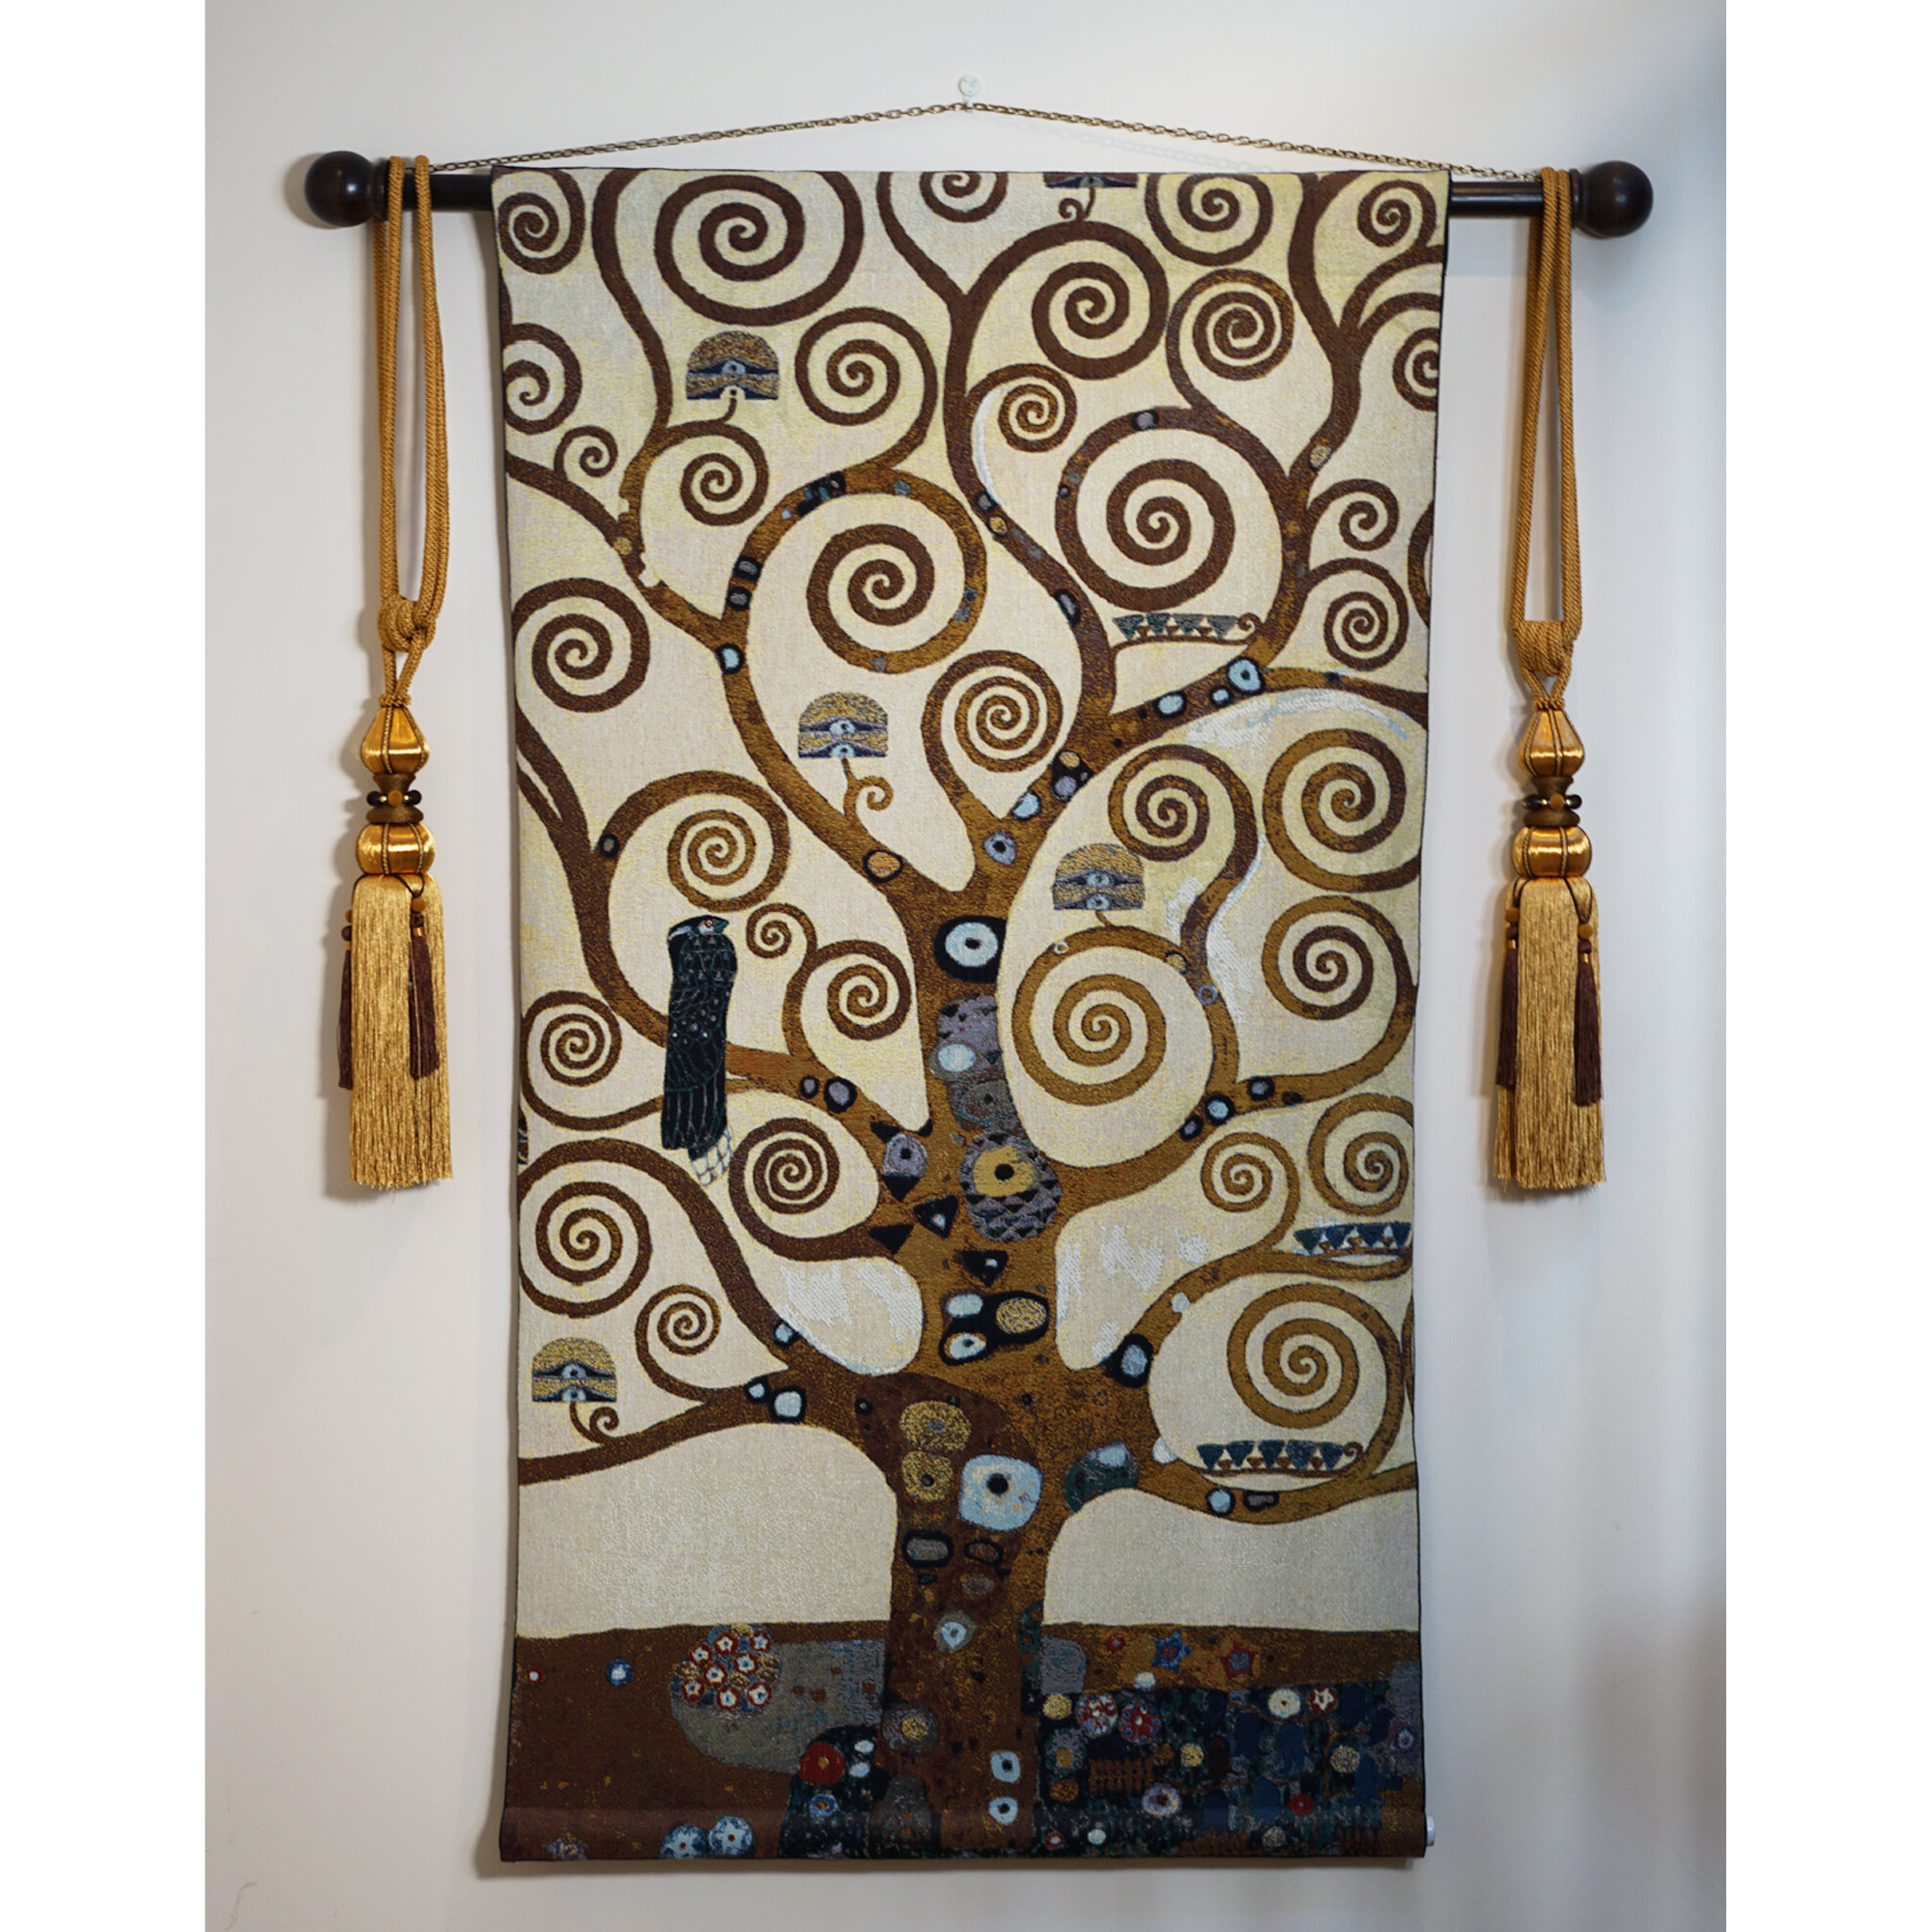 Blended Fabric Bellagio Scalinata Wall Hangings Inside Most Up To Date Cotton Klimt Tree Of Life Wall Hanging (View 15 of 20)